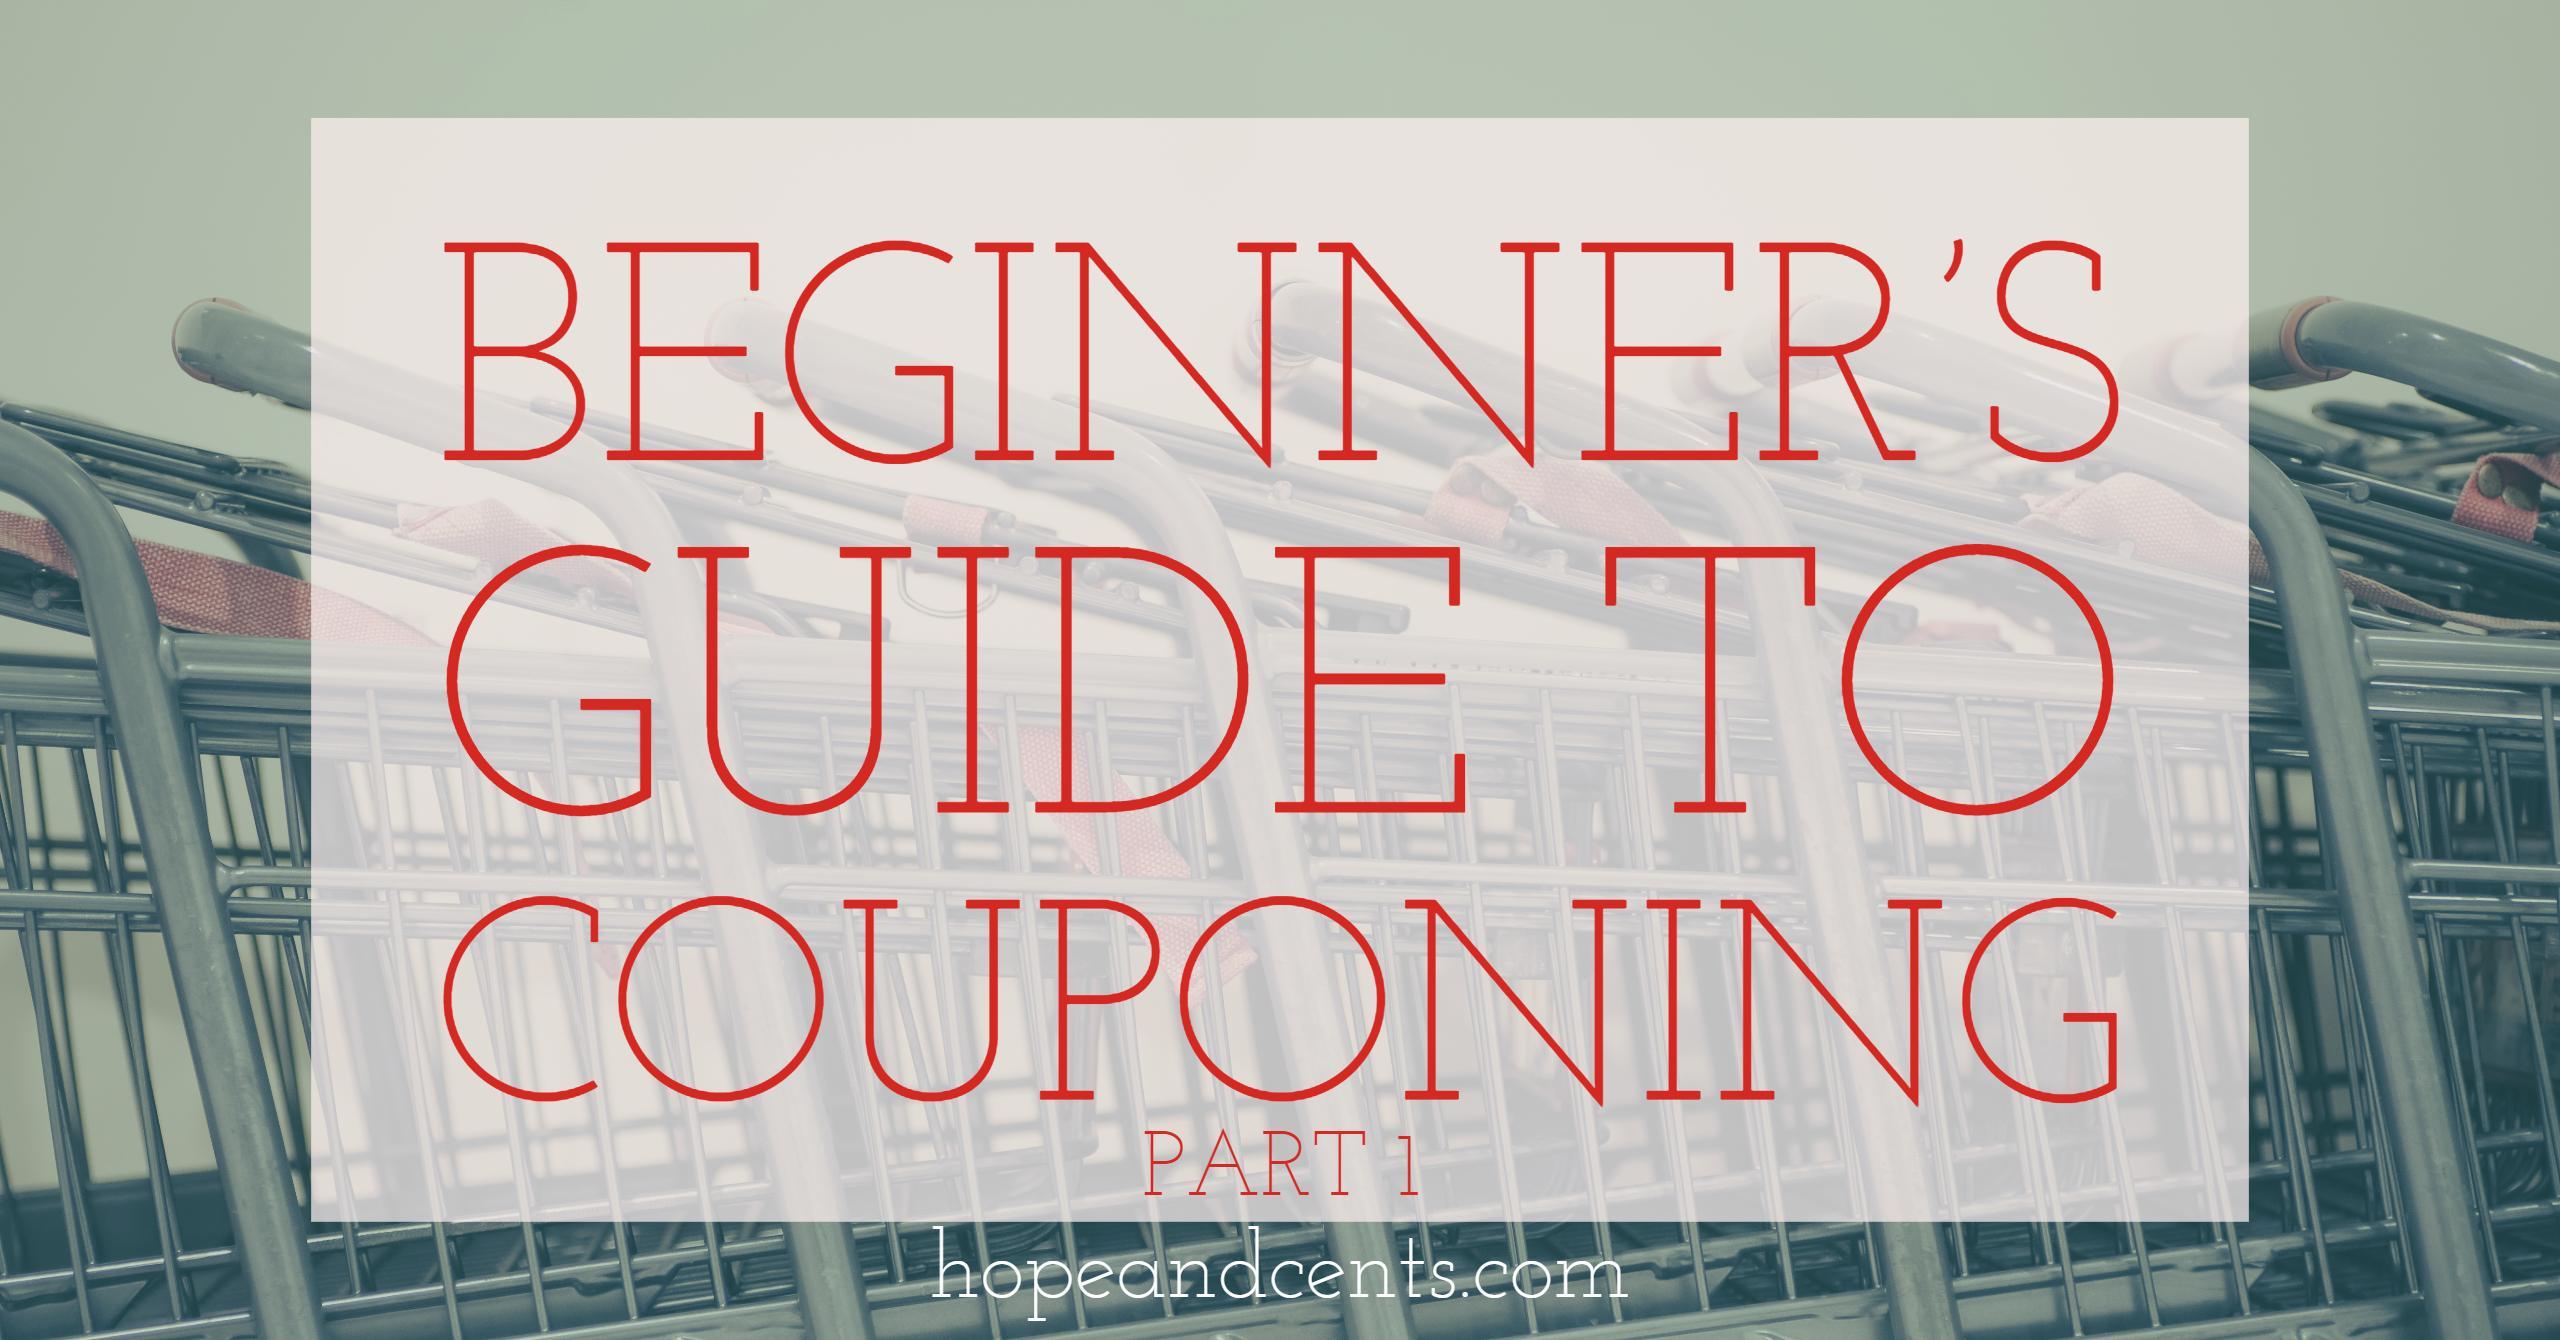 Beginner s Guide to Couponing